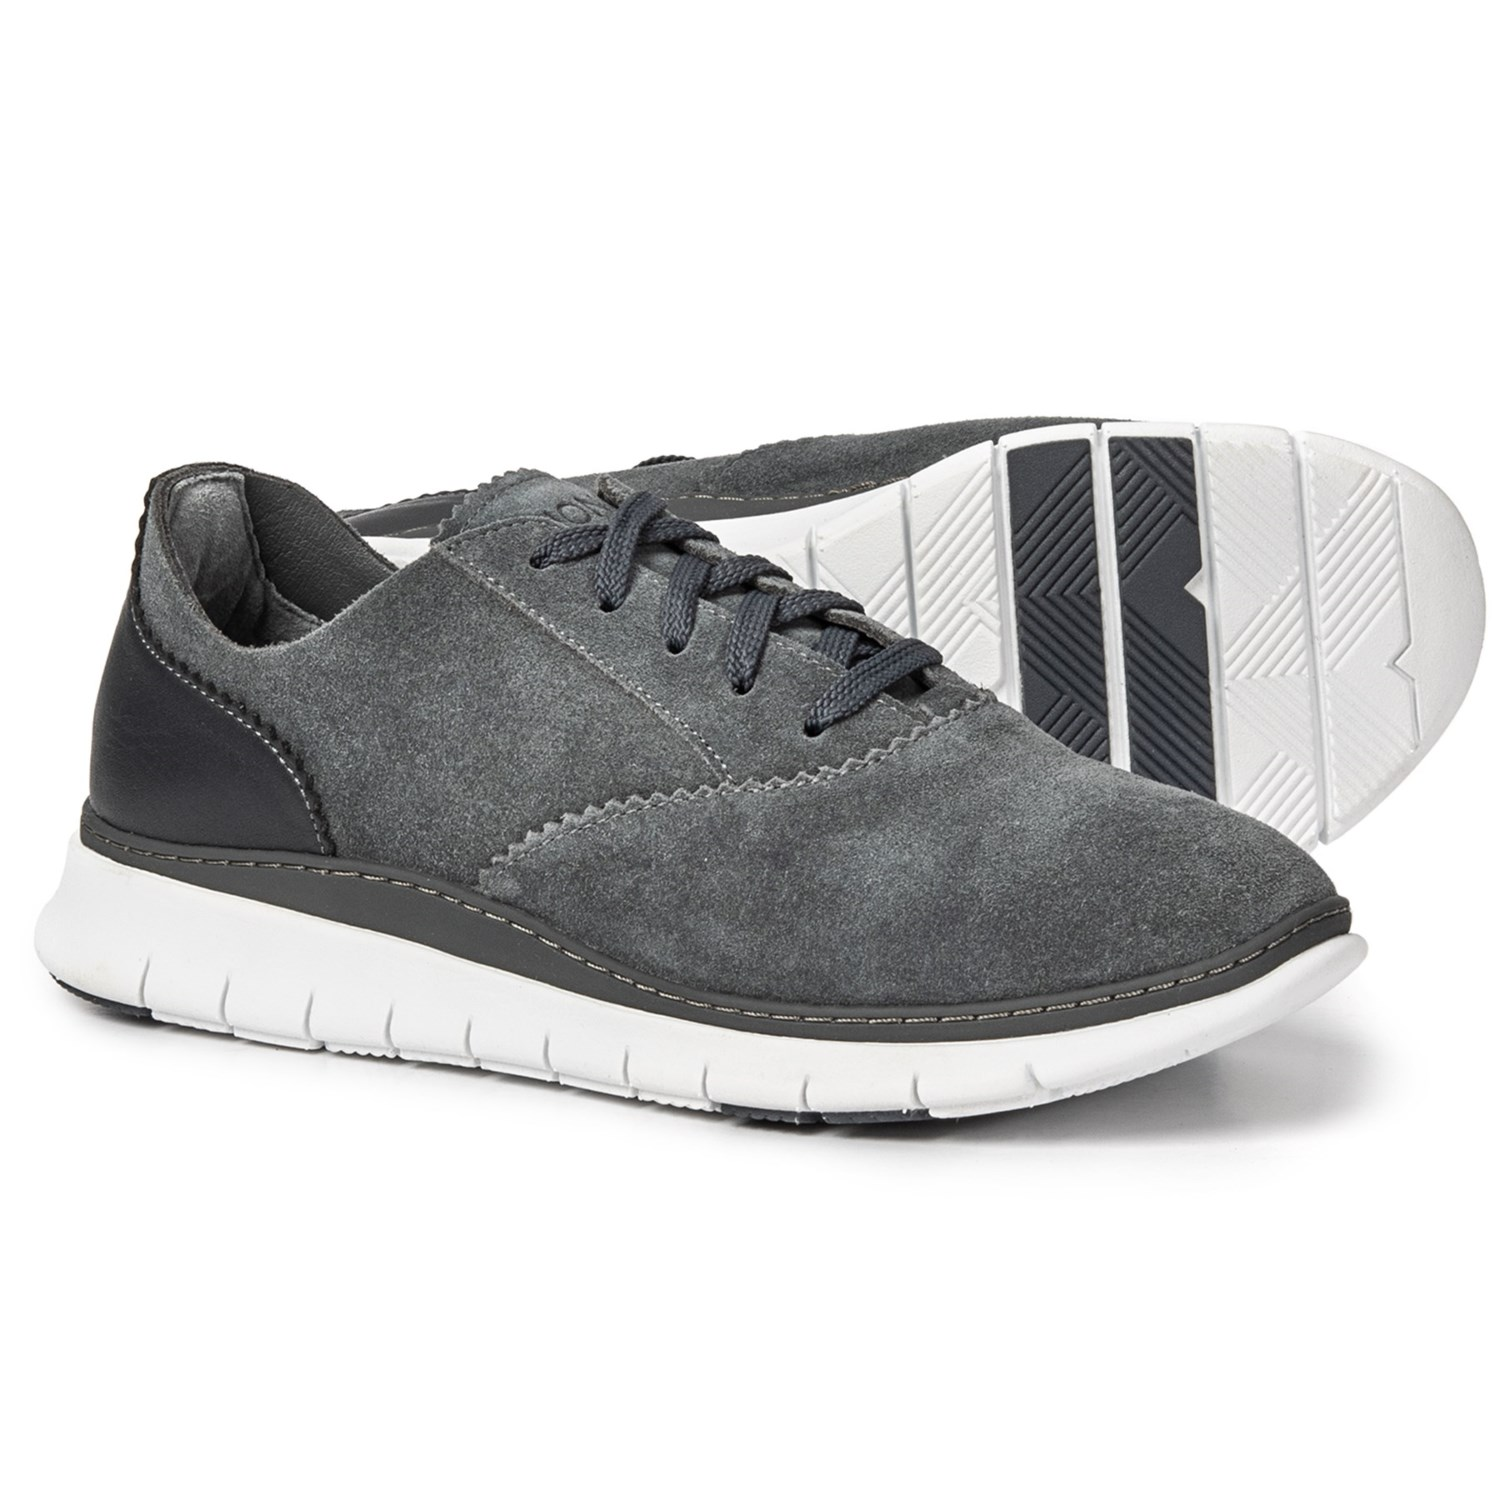 d4b8011fec09 Vionic Orthaheel Technology Taylor Sneakers - Suede (For Women) in Charcoal